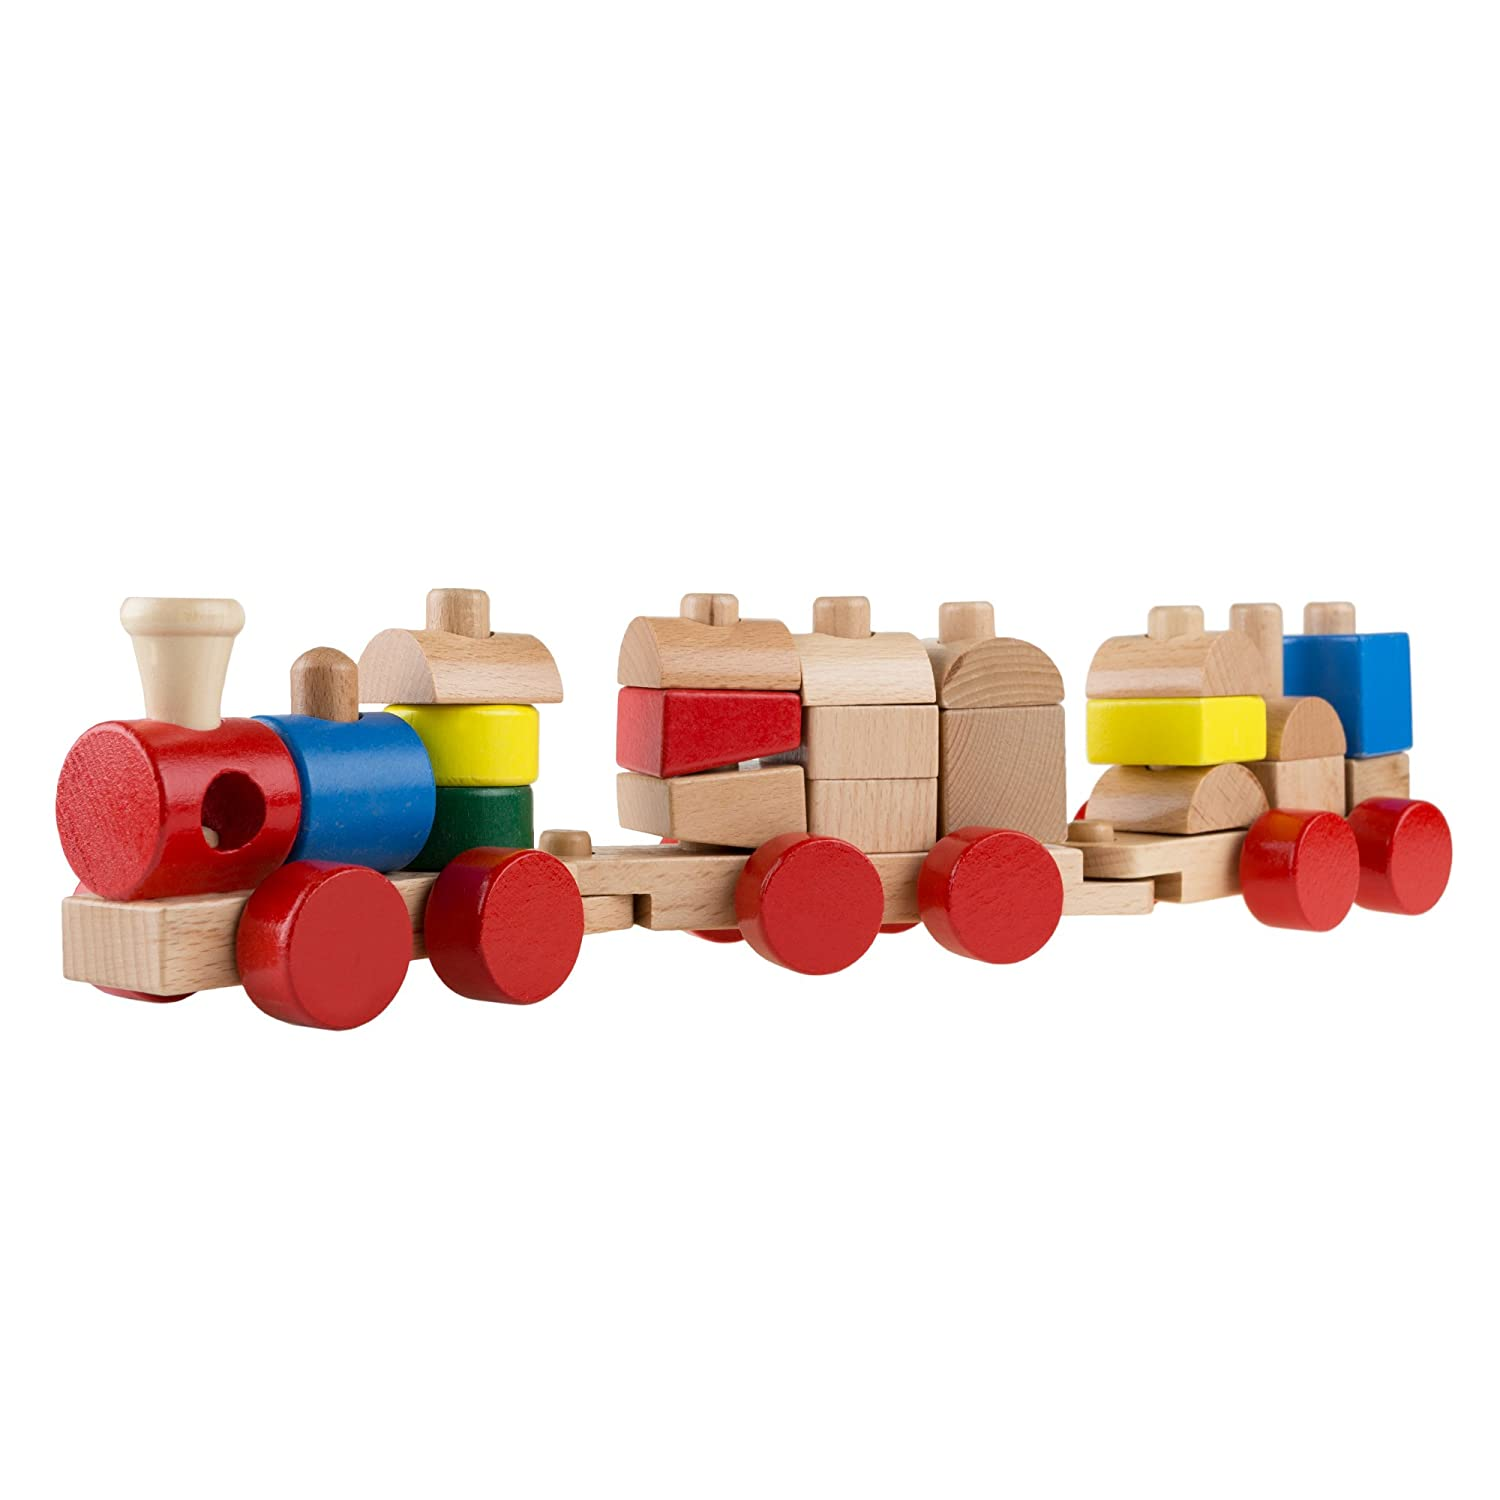 Trademark Global Interactive Learning Train Set with Bead Maze and Screw Block Train Cars for Boys and Girls Toys 80-HJD931095 Play Classic Wooden Toy Toddlers by Hey